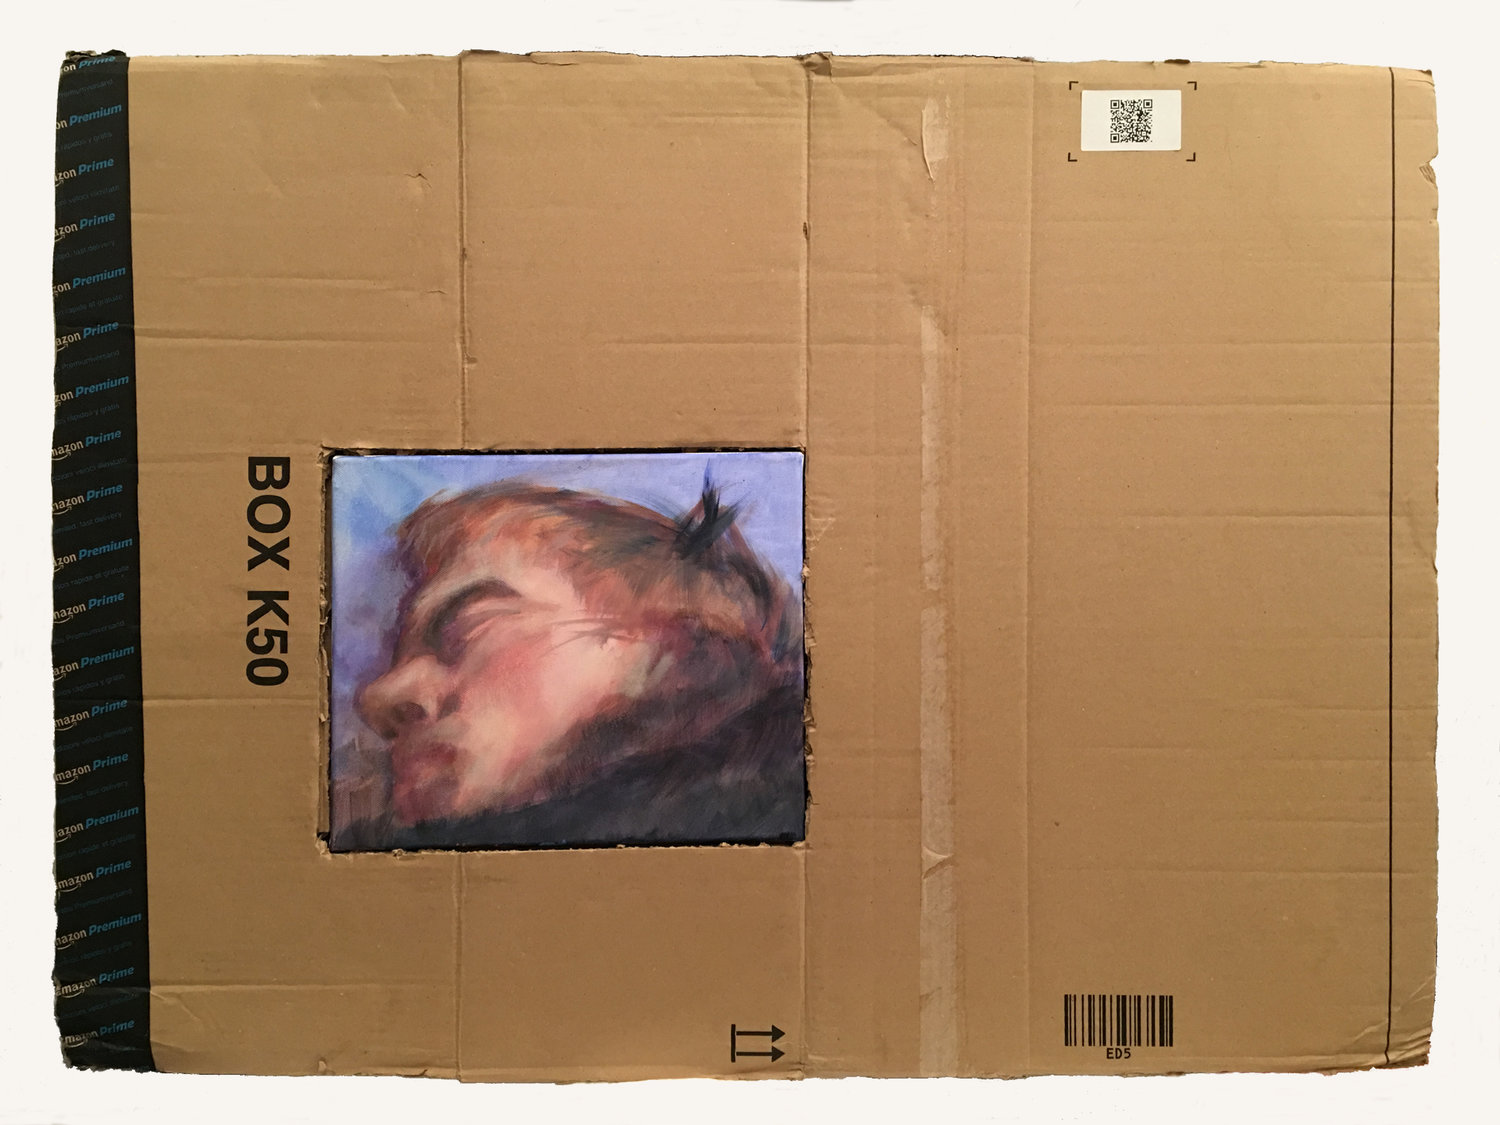 'BOX K50', Jane Barton, Acrylic on canvas, cardboard box, 65 x 88 x 3 cm